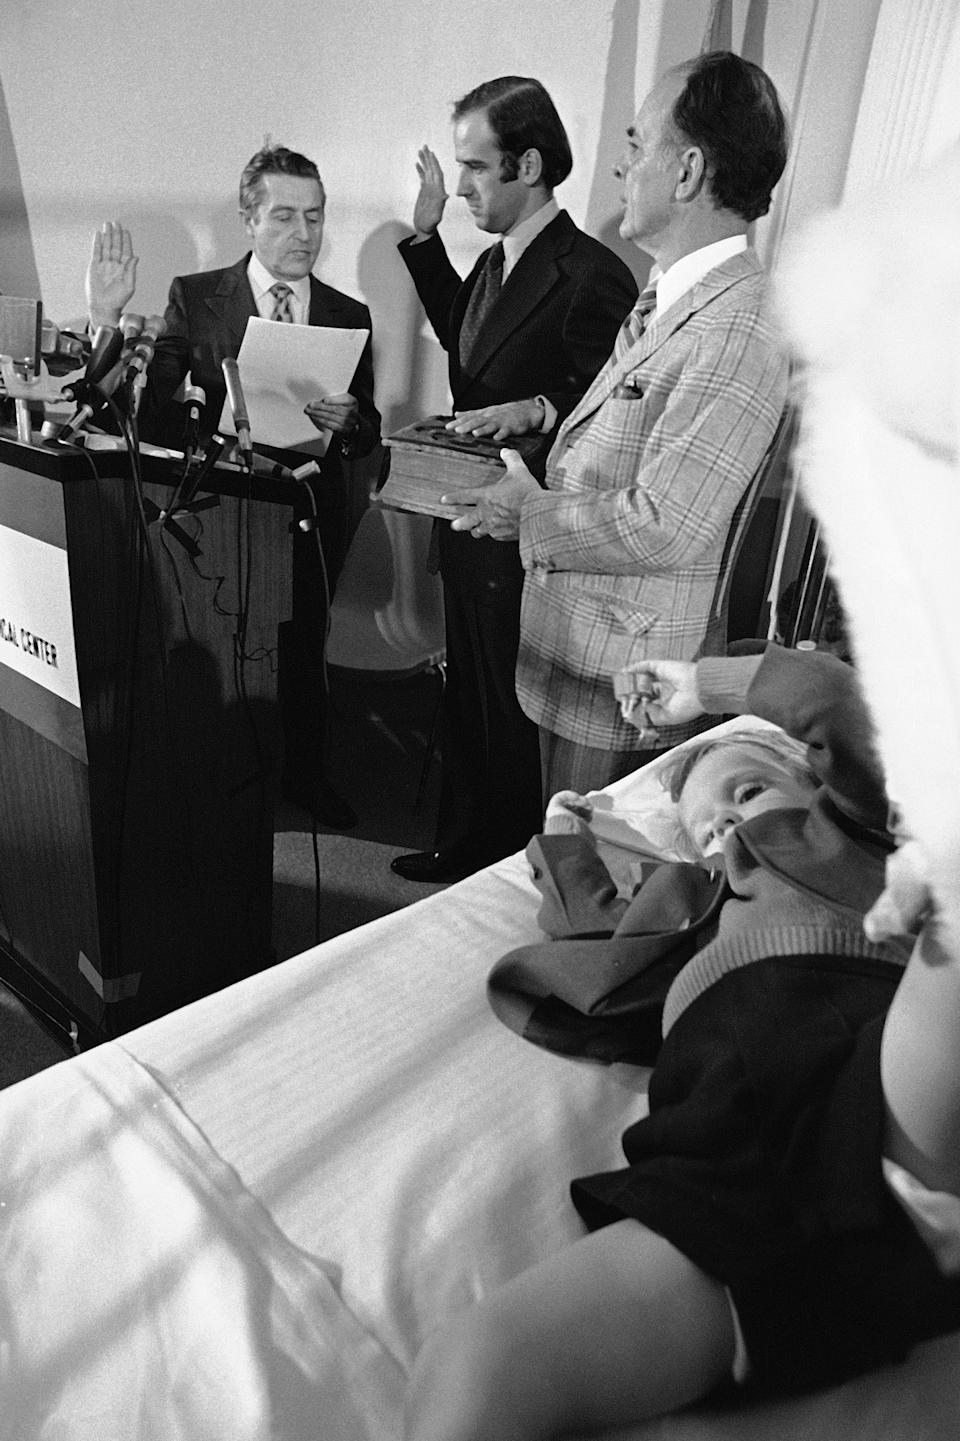 In this Jan. 5, 1973 file photo, 4-year-old Beau Biden, foreground, watches his dad, Joe Biden, being sworn in as the U.S. senator from Delaware, in a Wilmington hospital. Beau was injured in an accident that killed his mother and sister in December. (AP Photo/File)